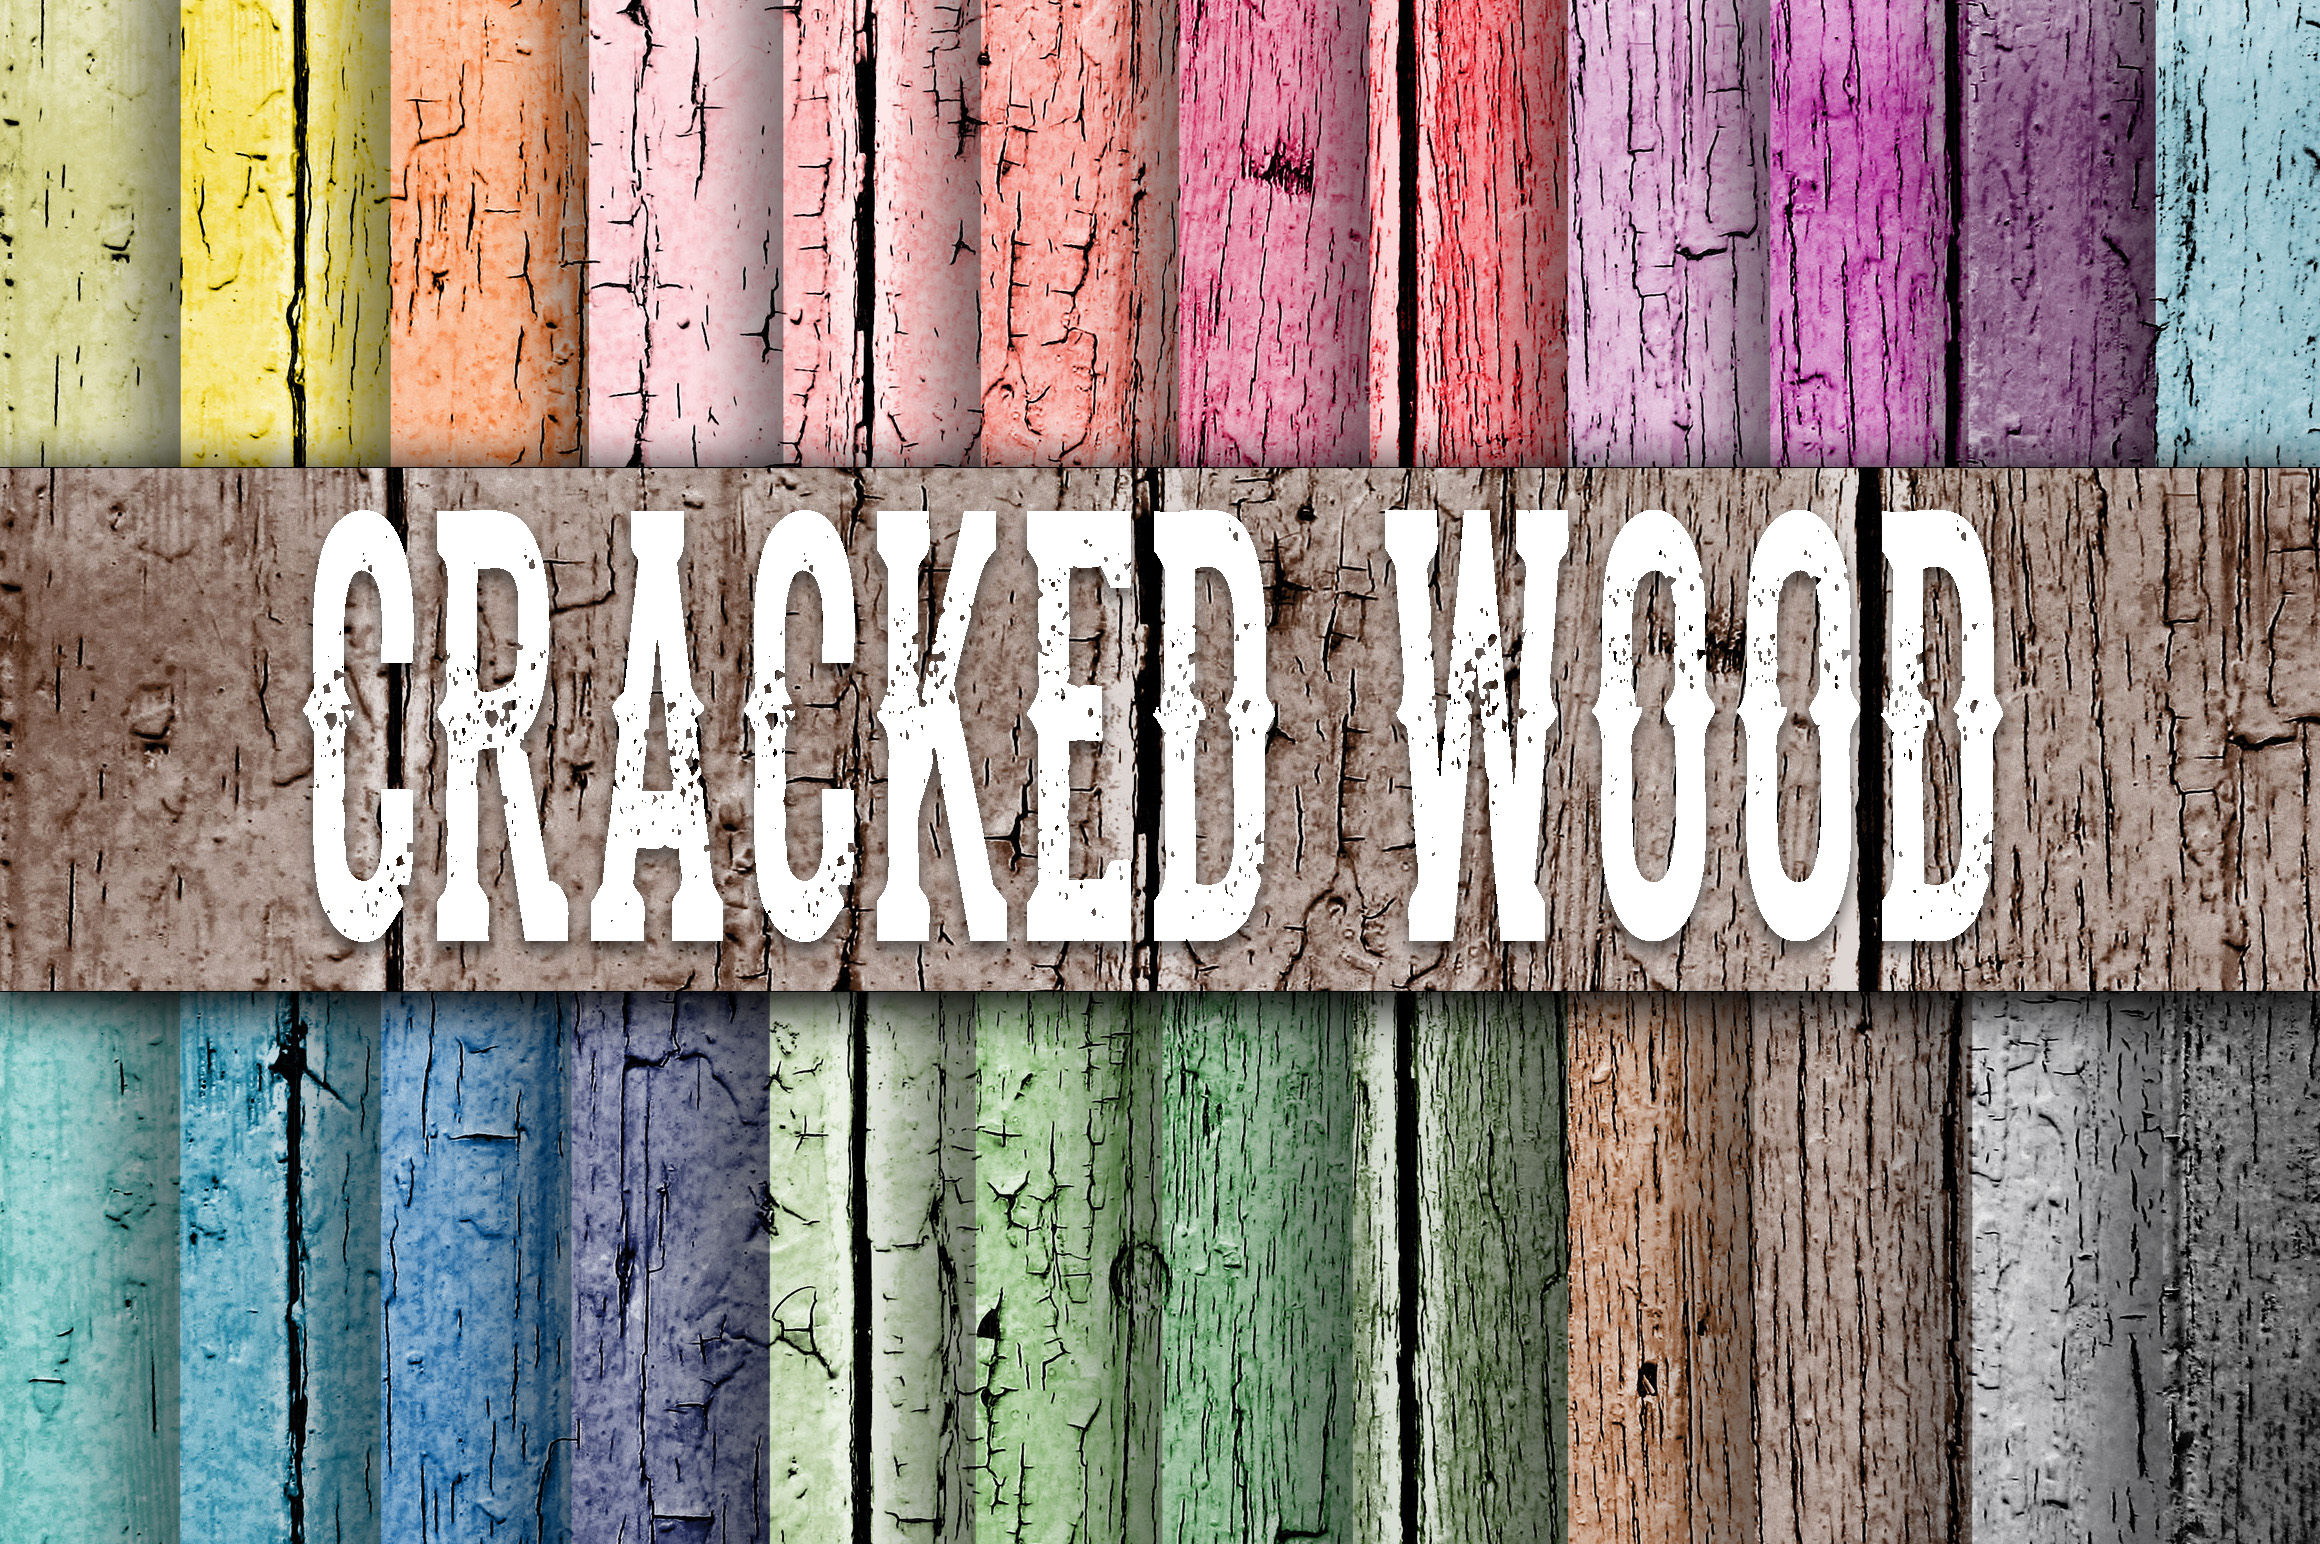 Cracked Wood Fence Digital Paper Textures